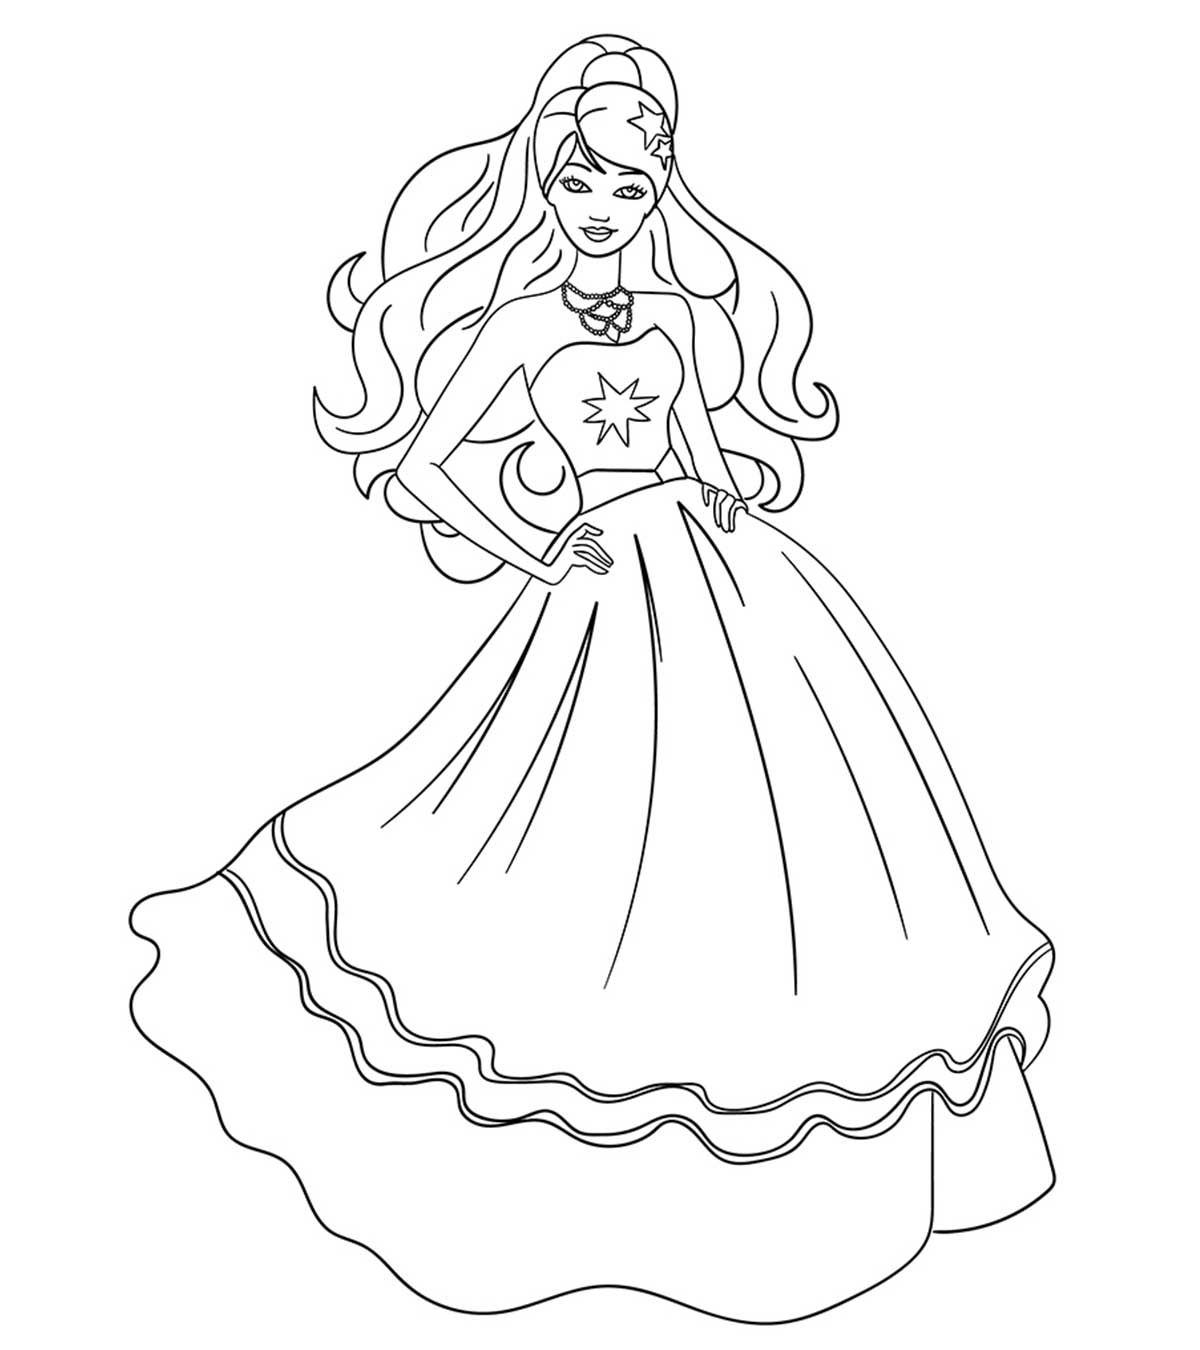 Barbie Coloring Pages Games Barbie Coloring Pages Coloring Pages For Girls Halloween Coloring Pages